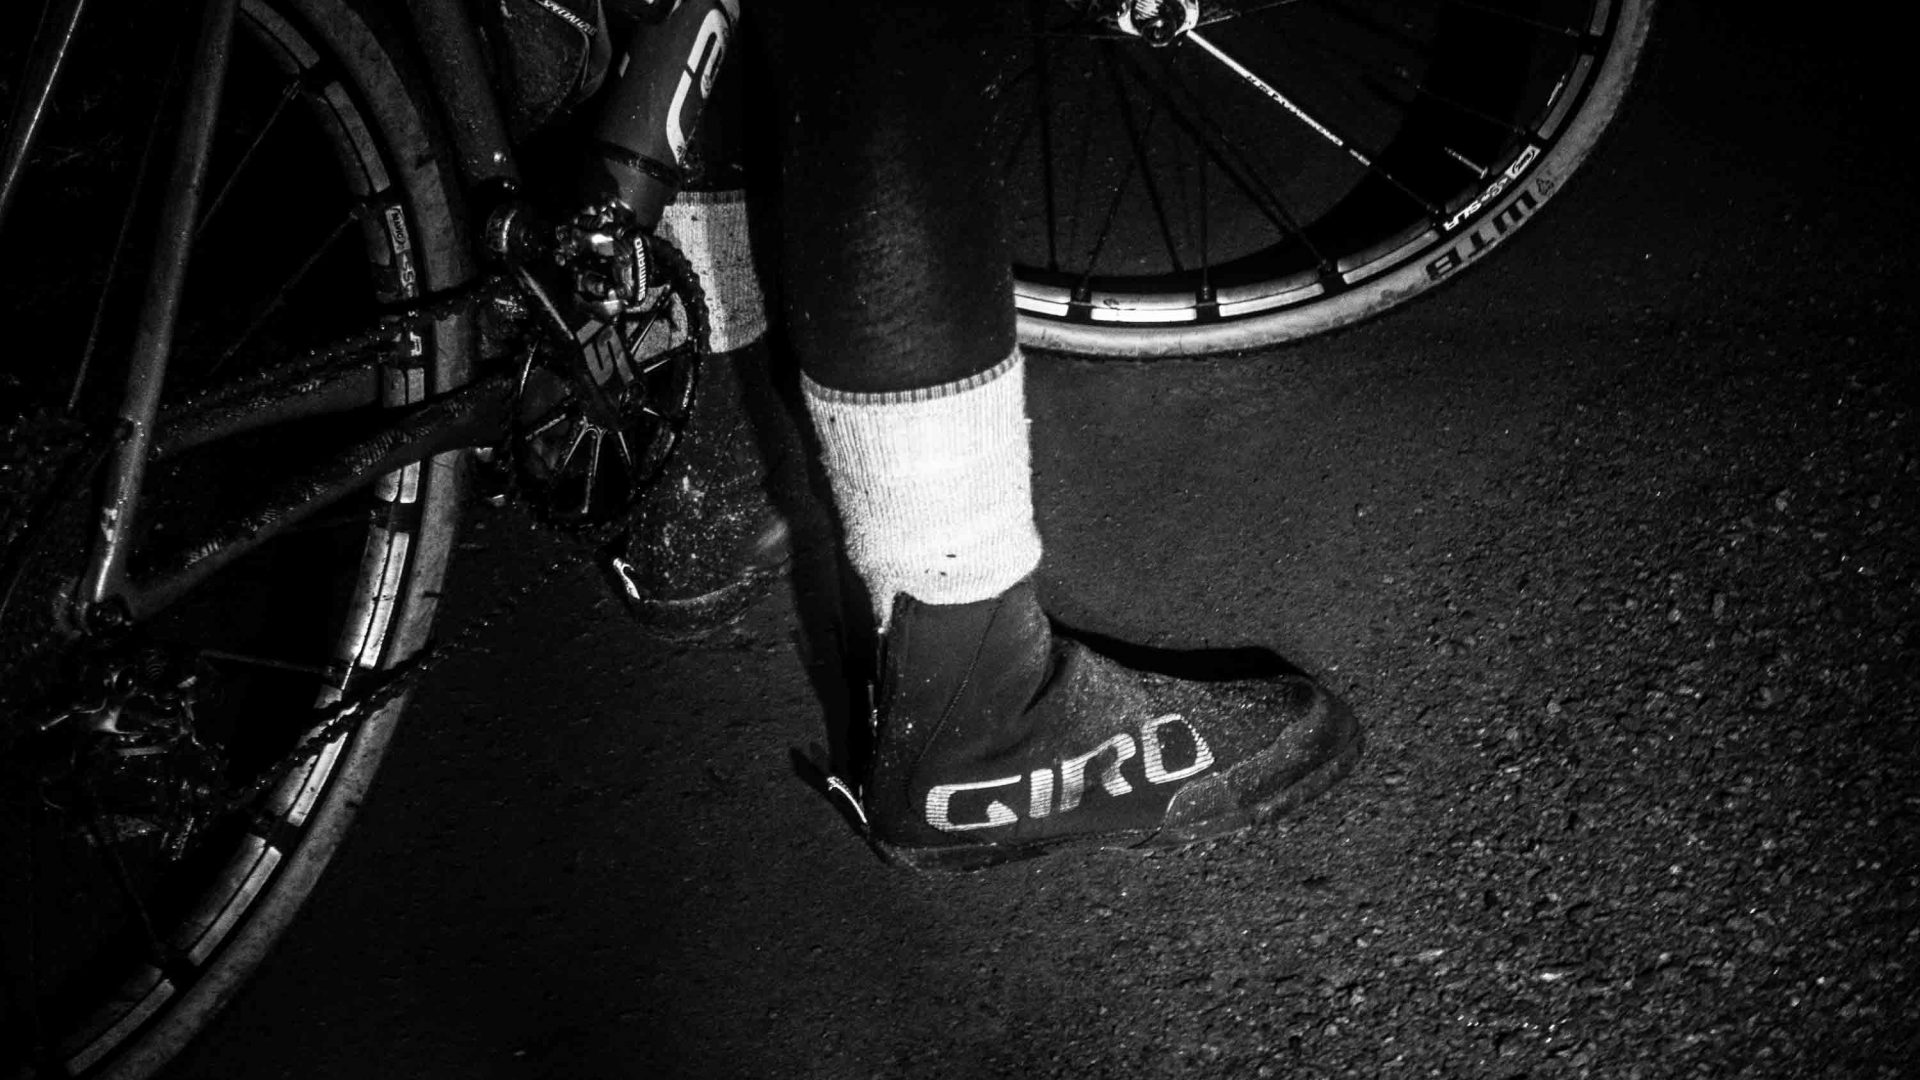 A cyclist's foot on the road.